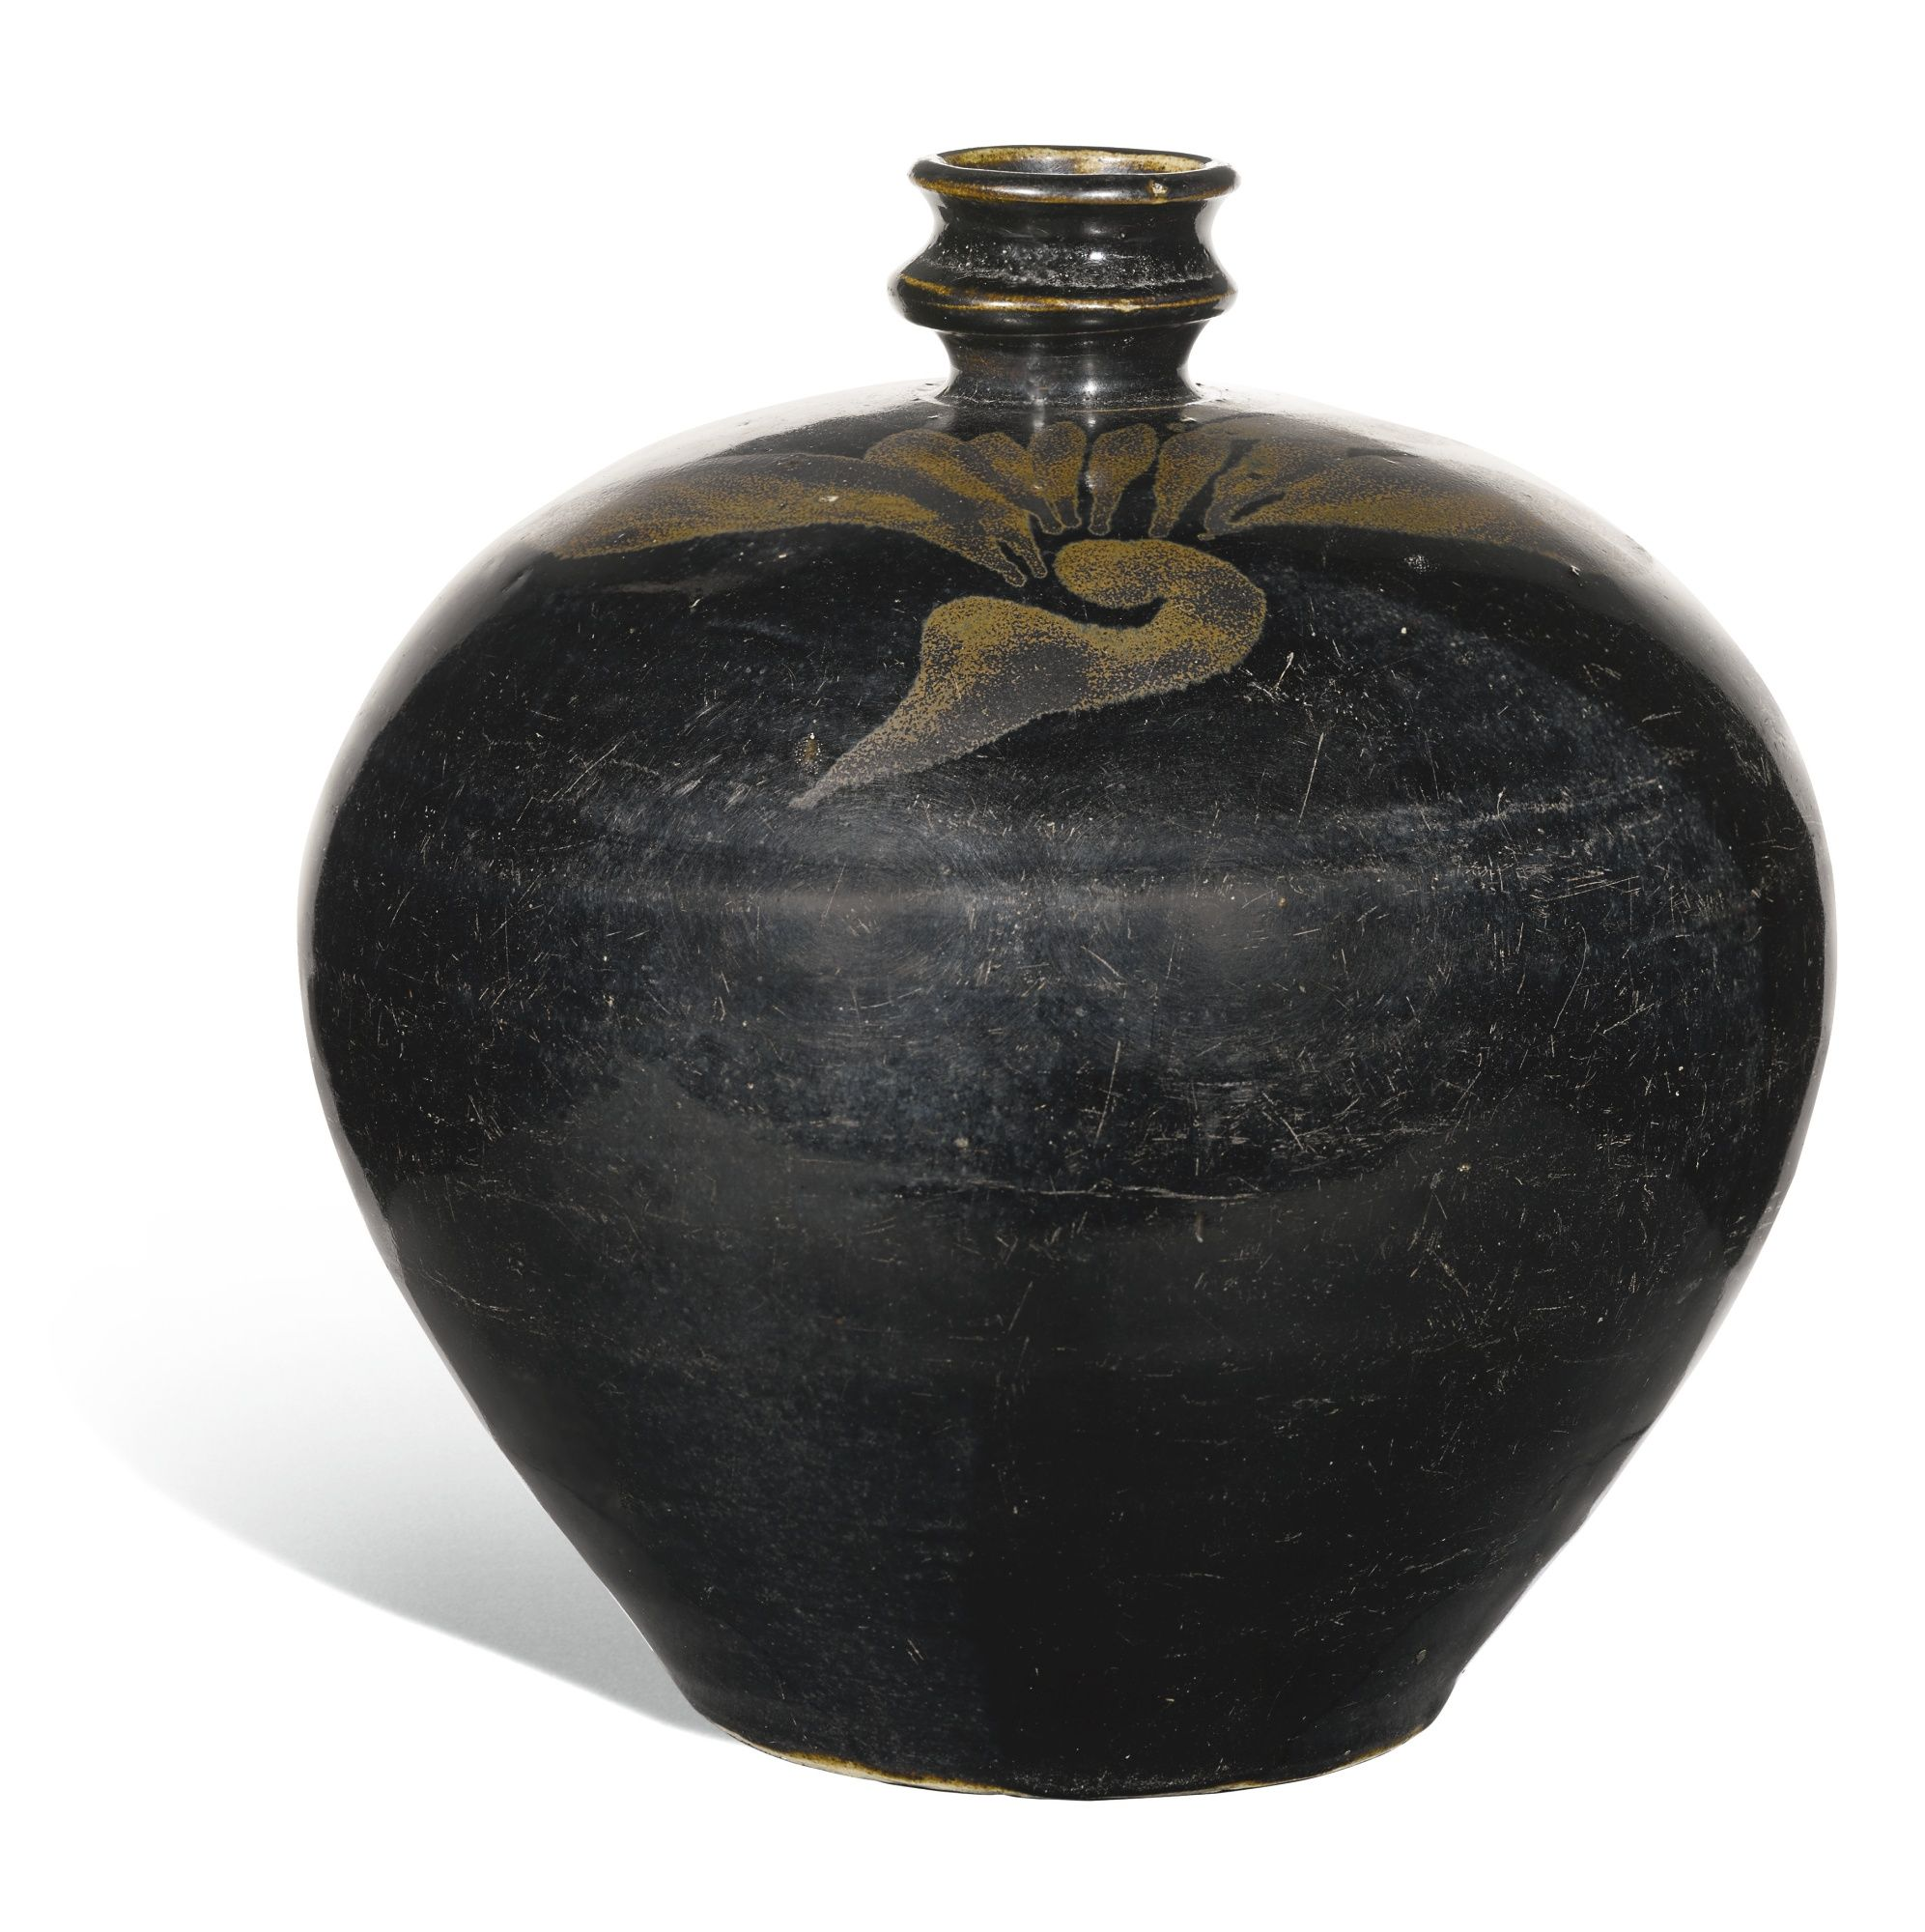 A 'HENAN' RUSSET-PAINTED BLACK-GLAZED MEIPING, SONG/JIN DYNASTY